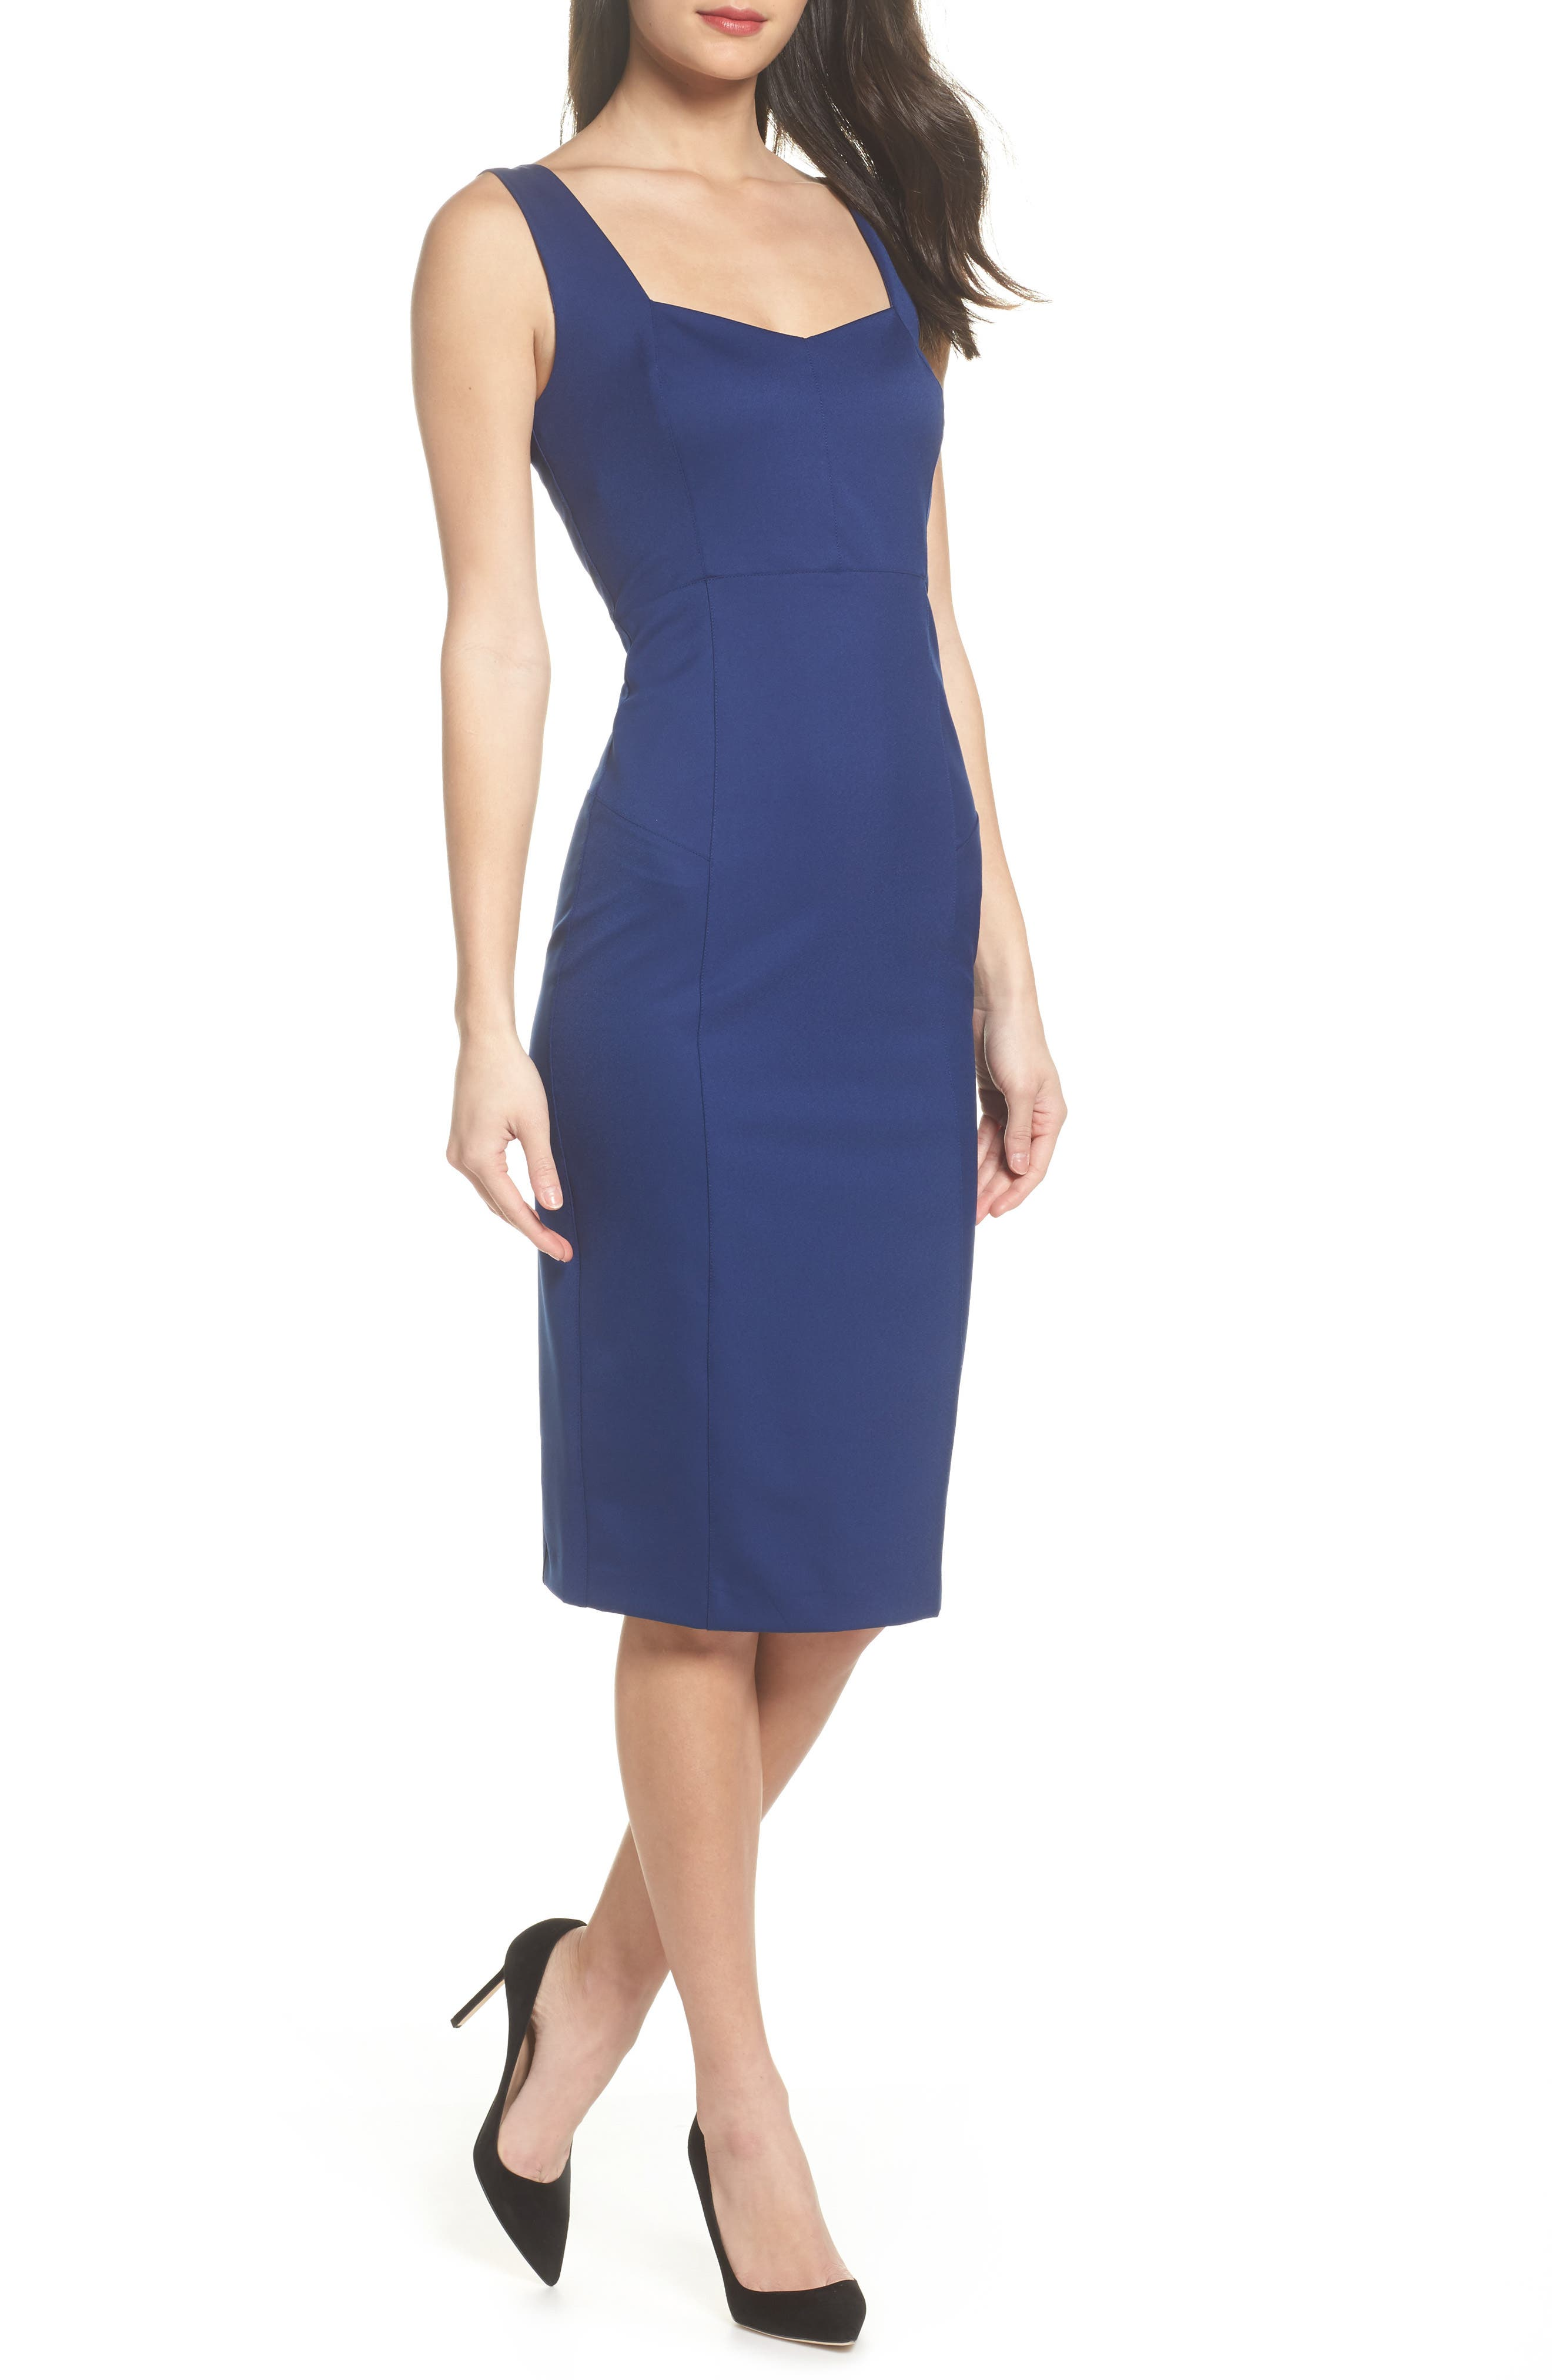 Felicity & Coco Mirren Midi Body-Con Dress